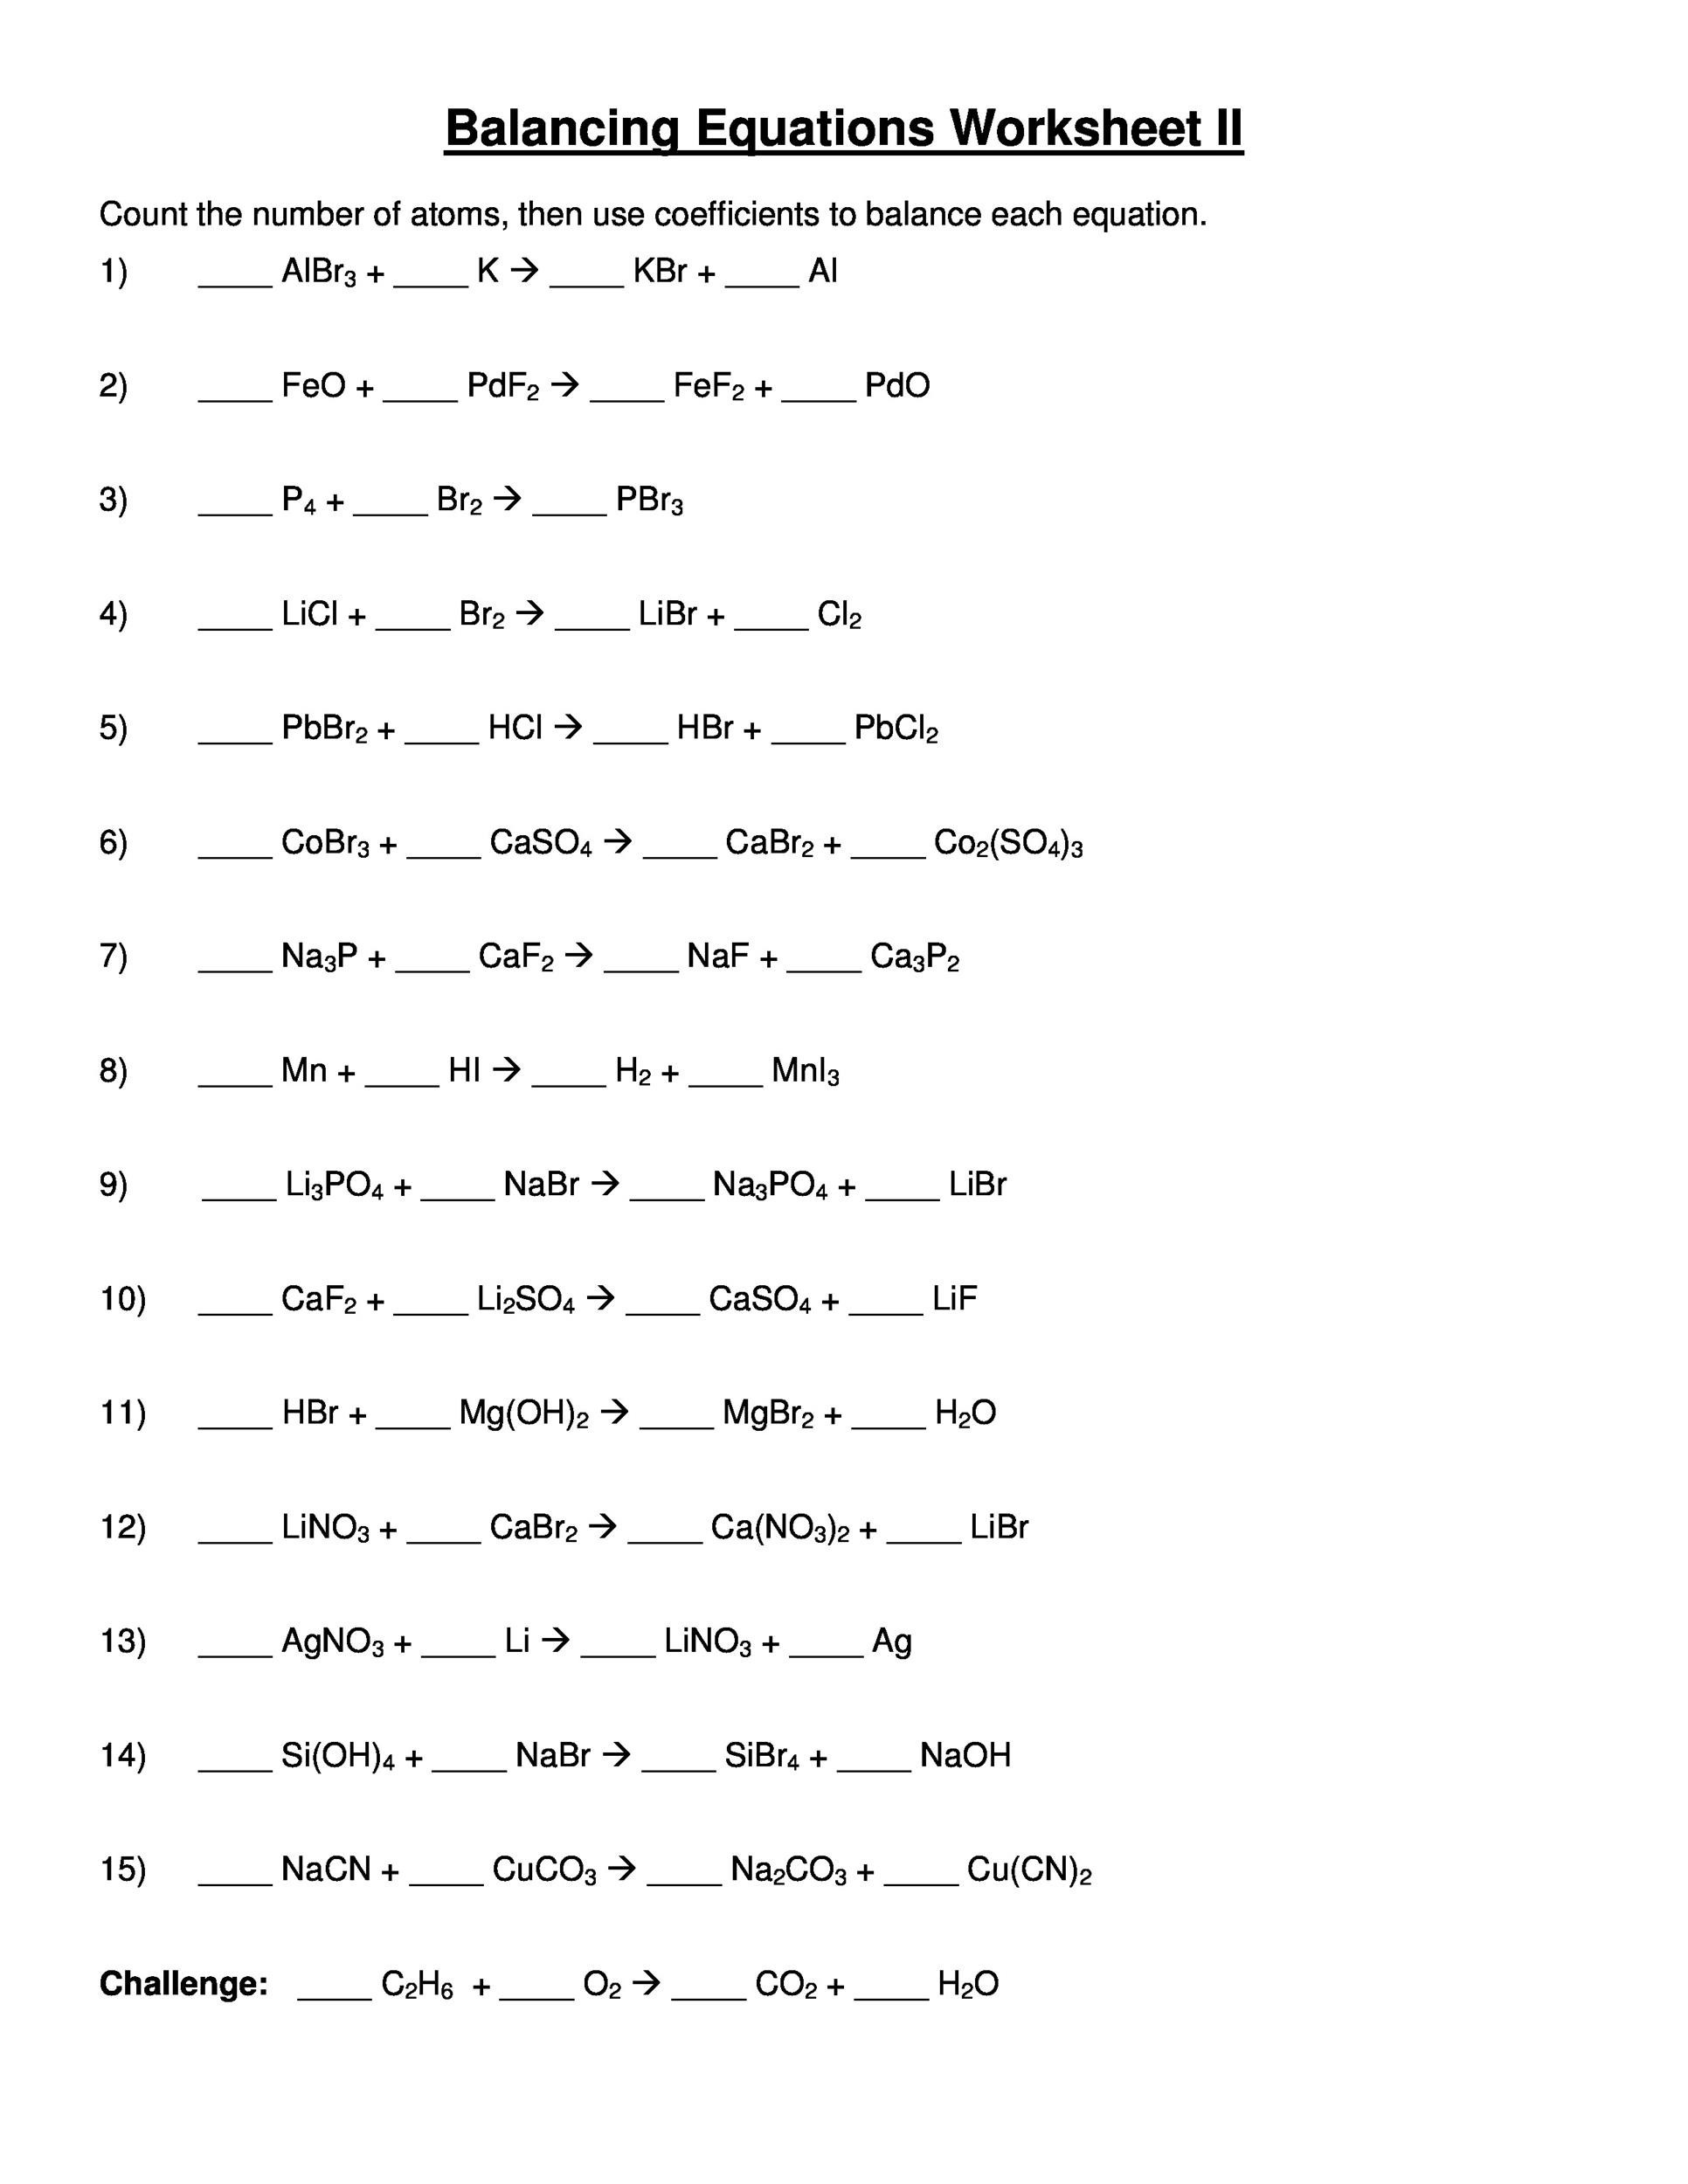 Balancing equations worksheet answer key about chemistry